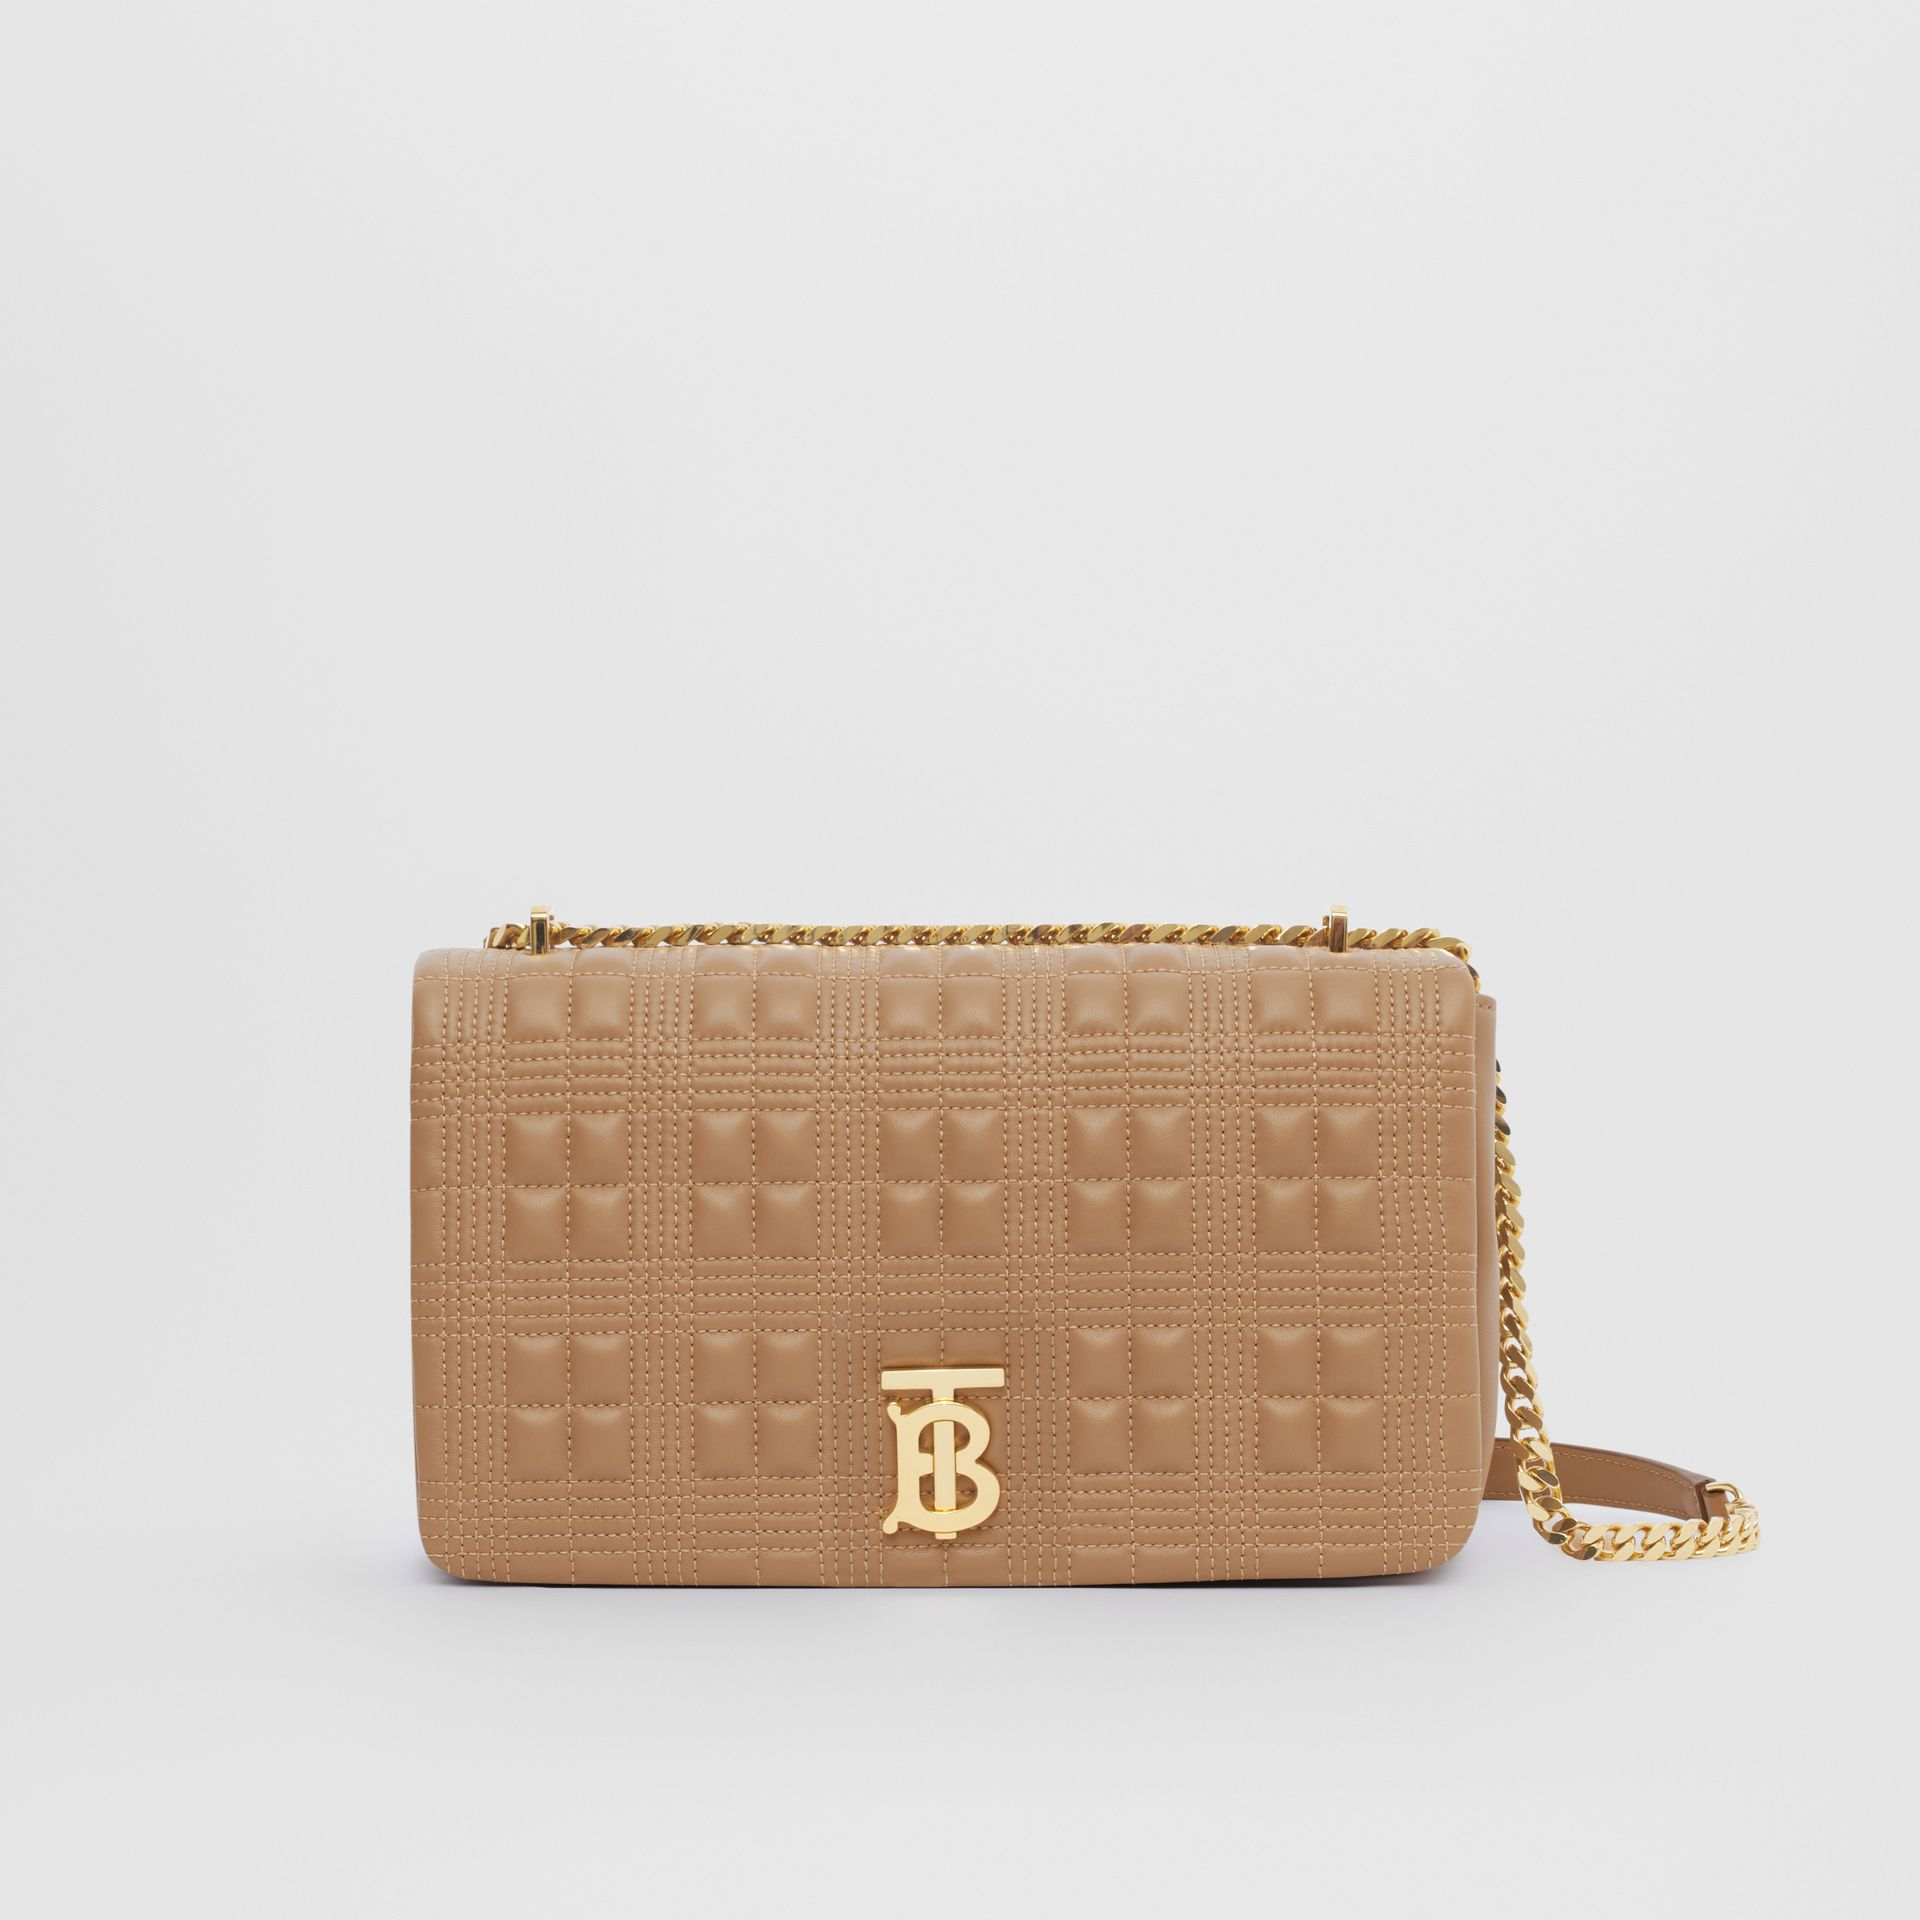 Medium Quilted Check Lambskin Lola Bag in Camel - Women | Burberry - gallery image 0